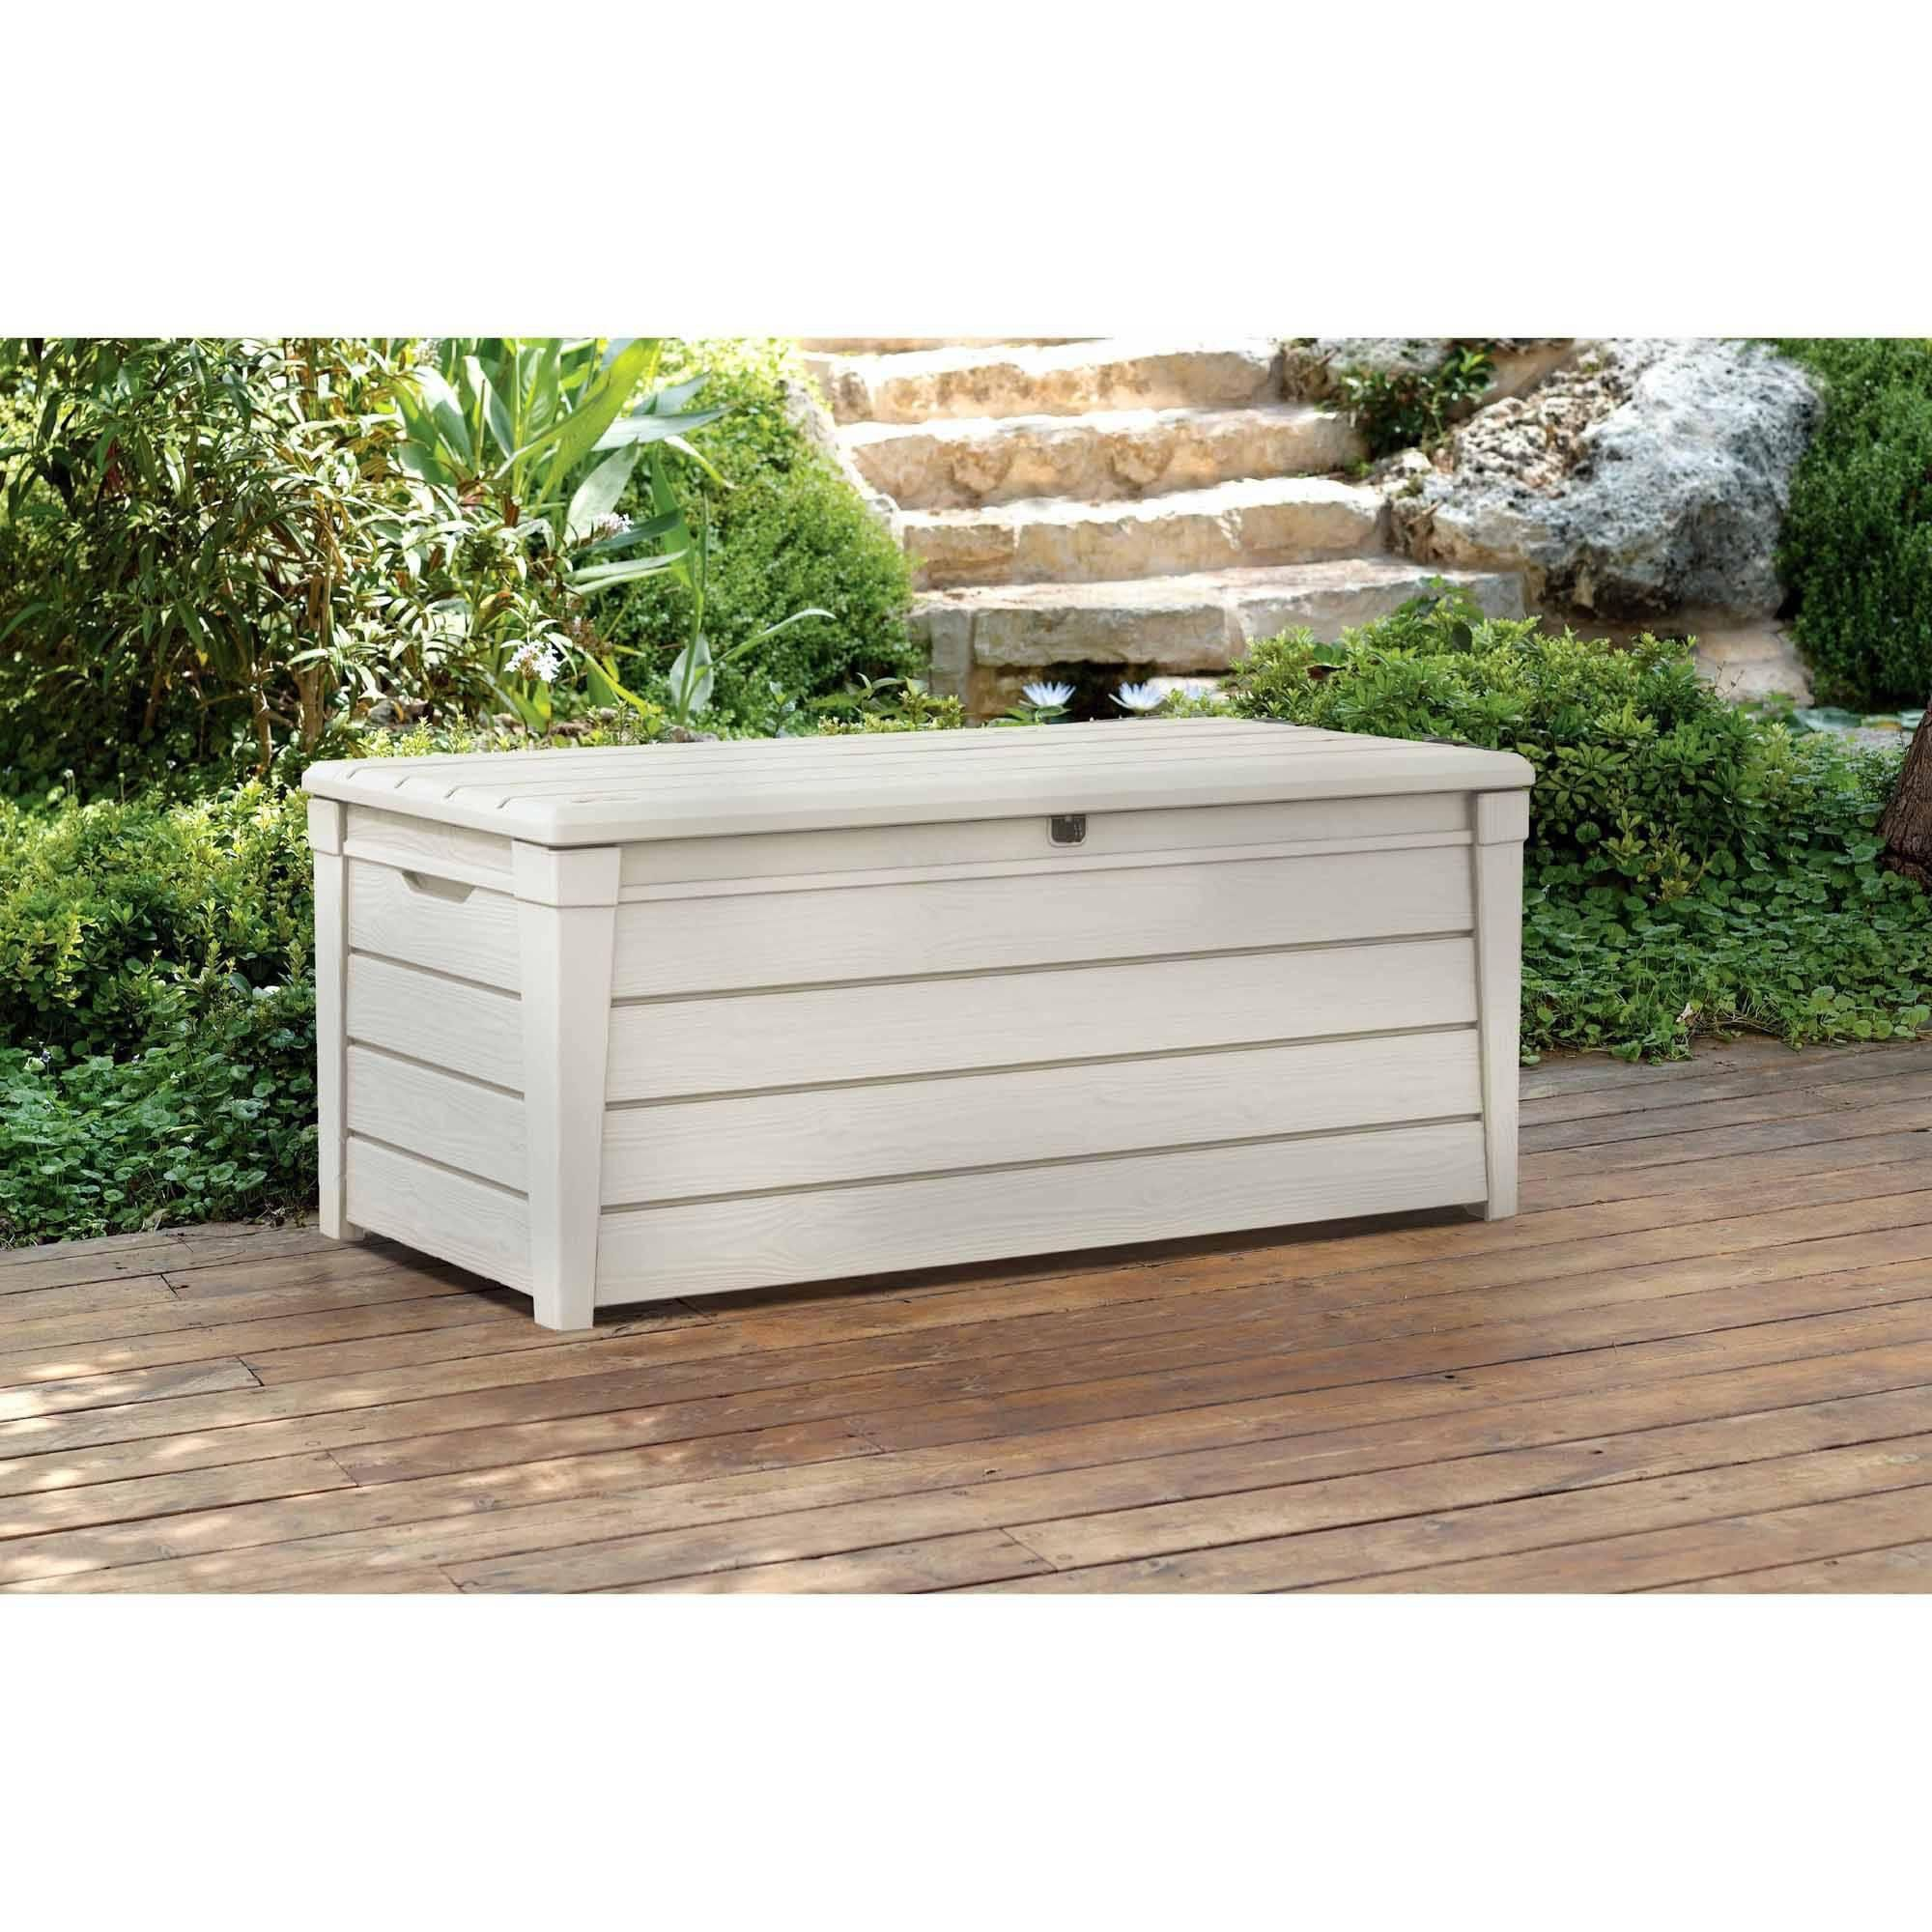 Keter Brightwood Outdoor Plastic Deck Storage Container Box 120 Gal